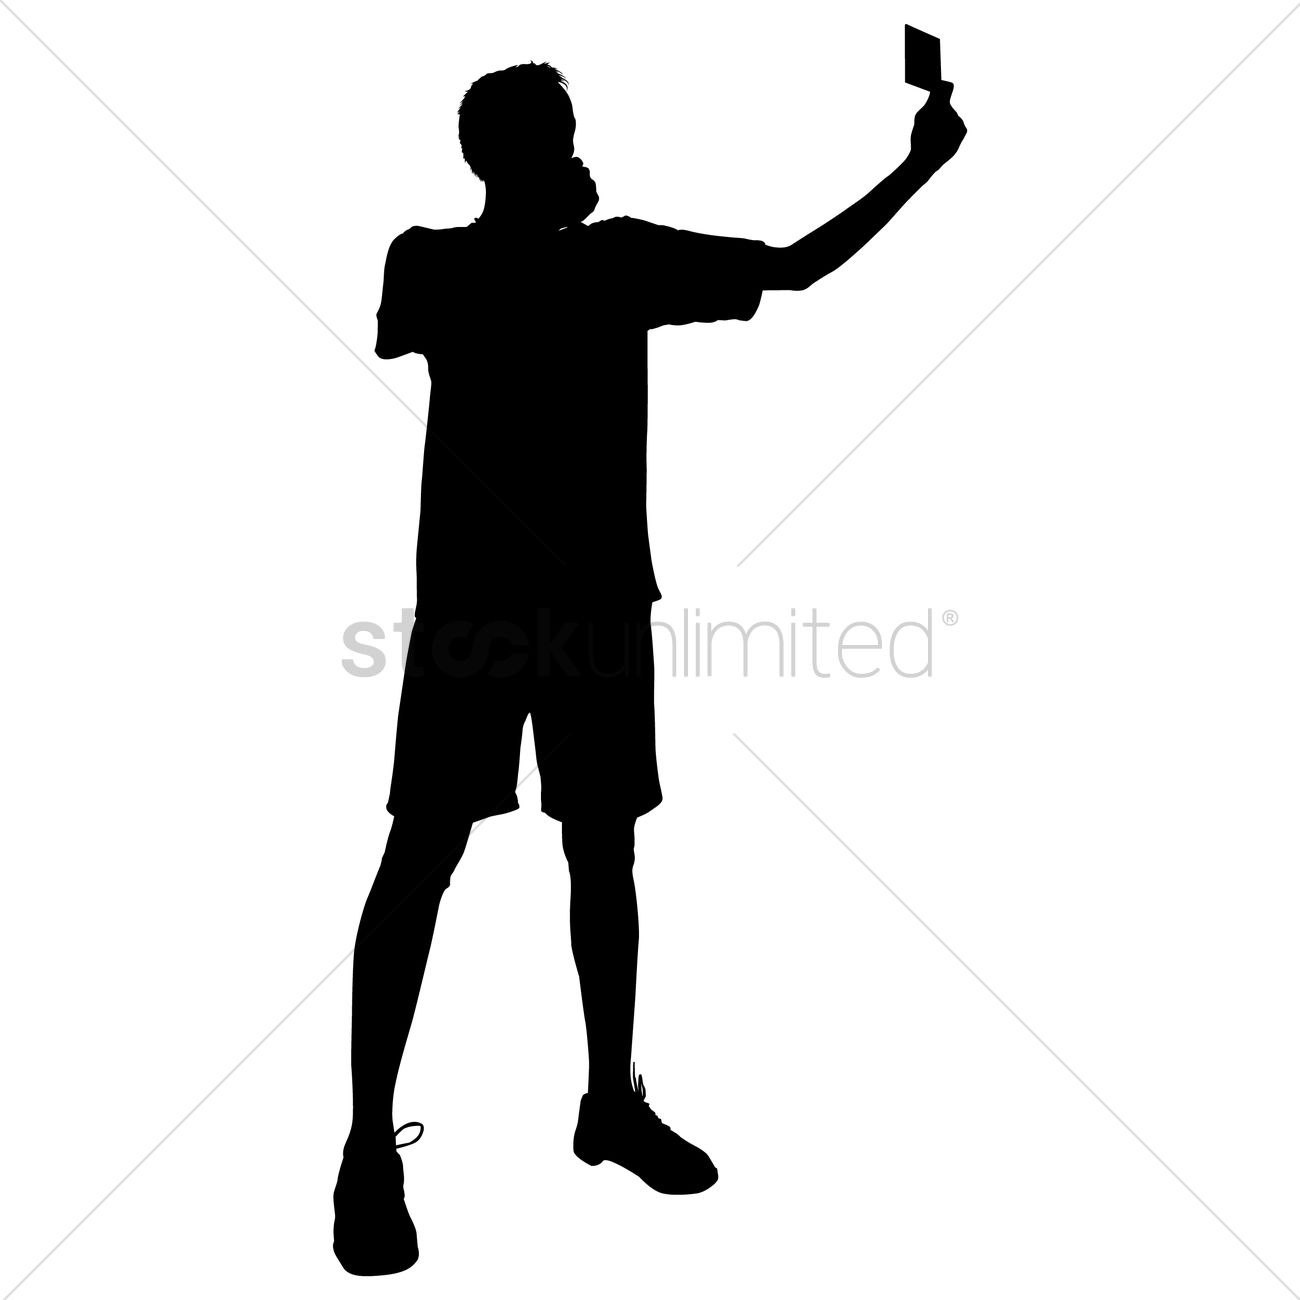 Taking a selfie clipart silhoette clip art freeuse library Silhouette of a man taking selfie Vector Image - 1456610 ... clip art freeuse library